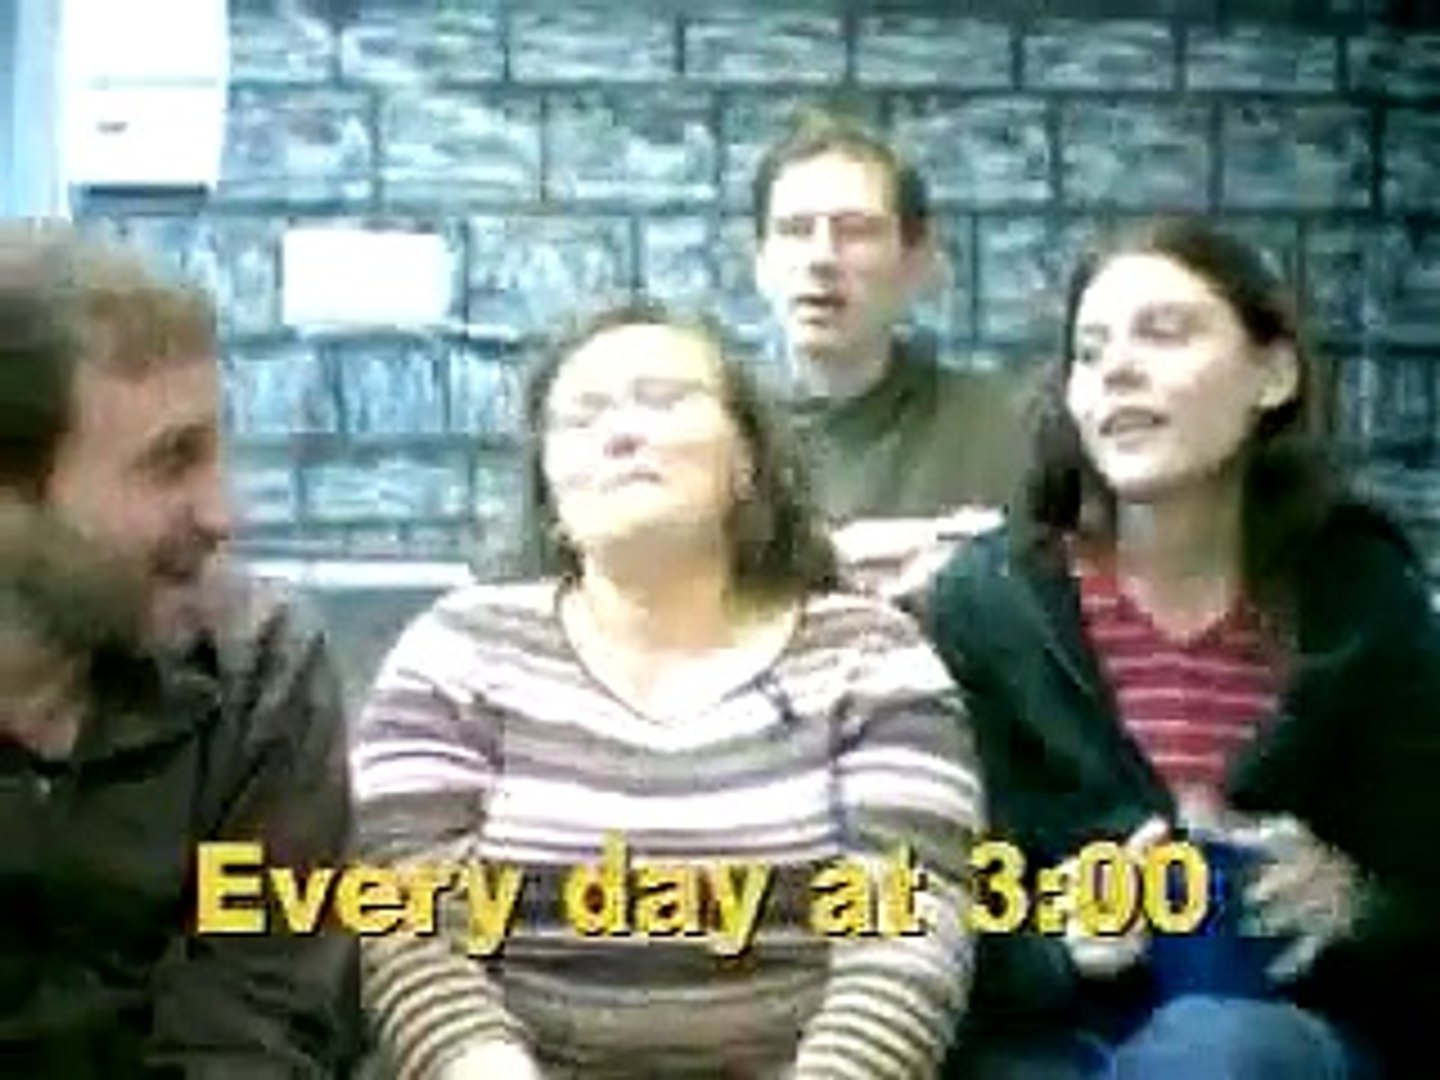 The Daily Vlog, 12/21/2006: The Blizzard of 2006